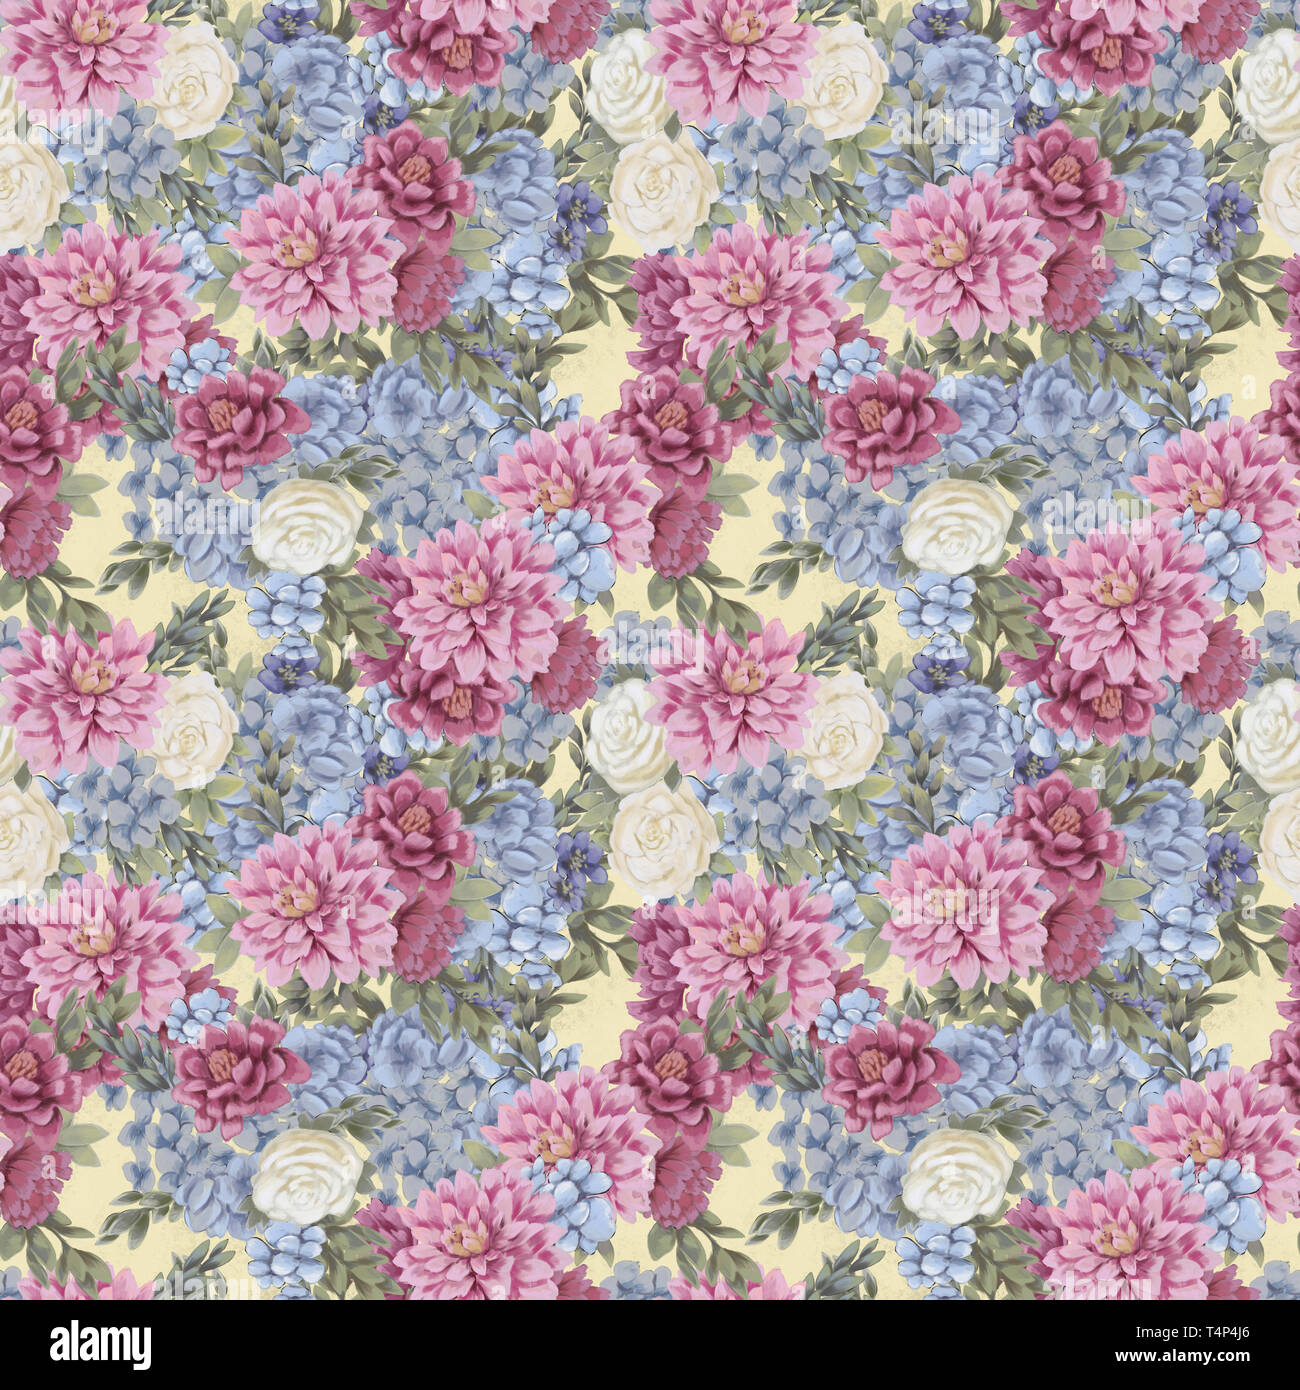 Watercolor Floral Seamless Pattern Greeting Card Template Or